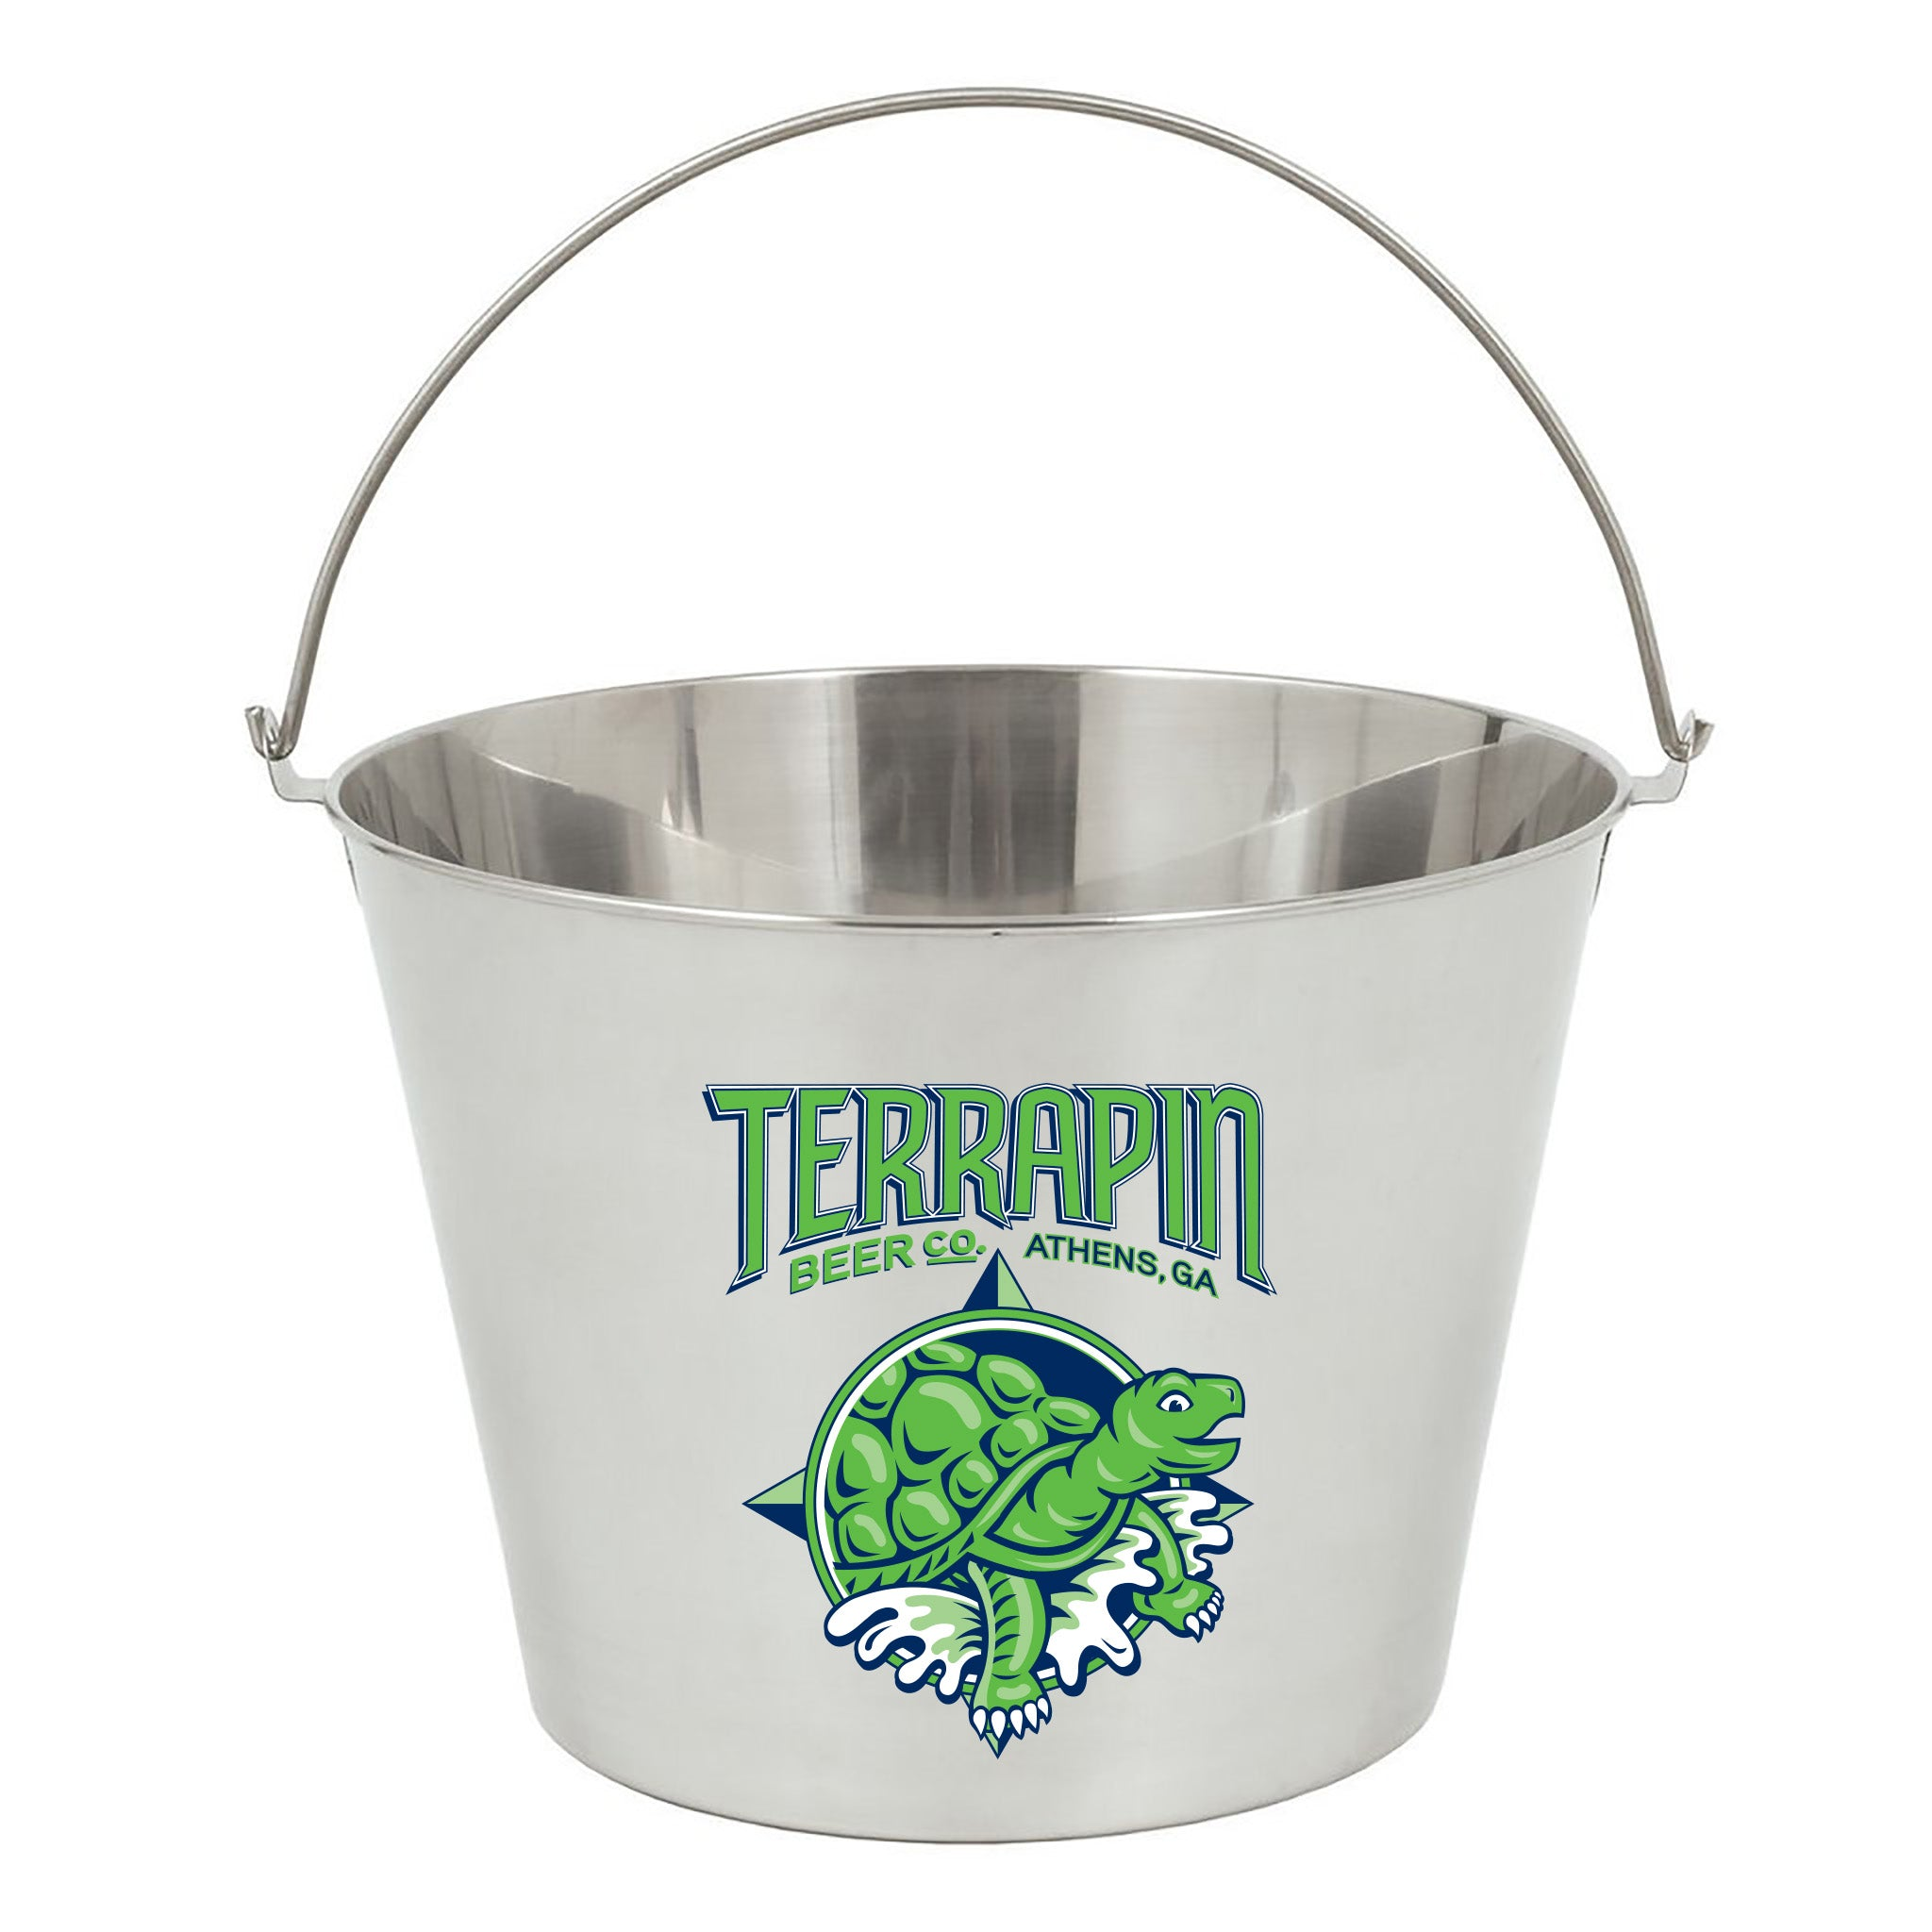 Galvanized Metal Beer Bucket